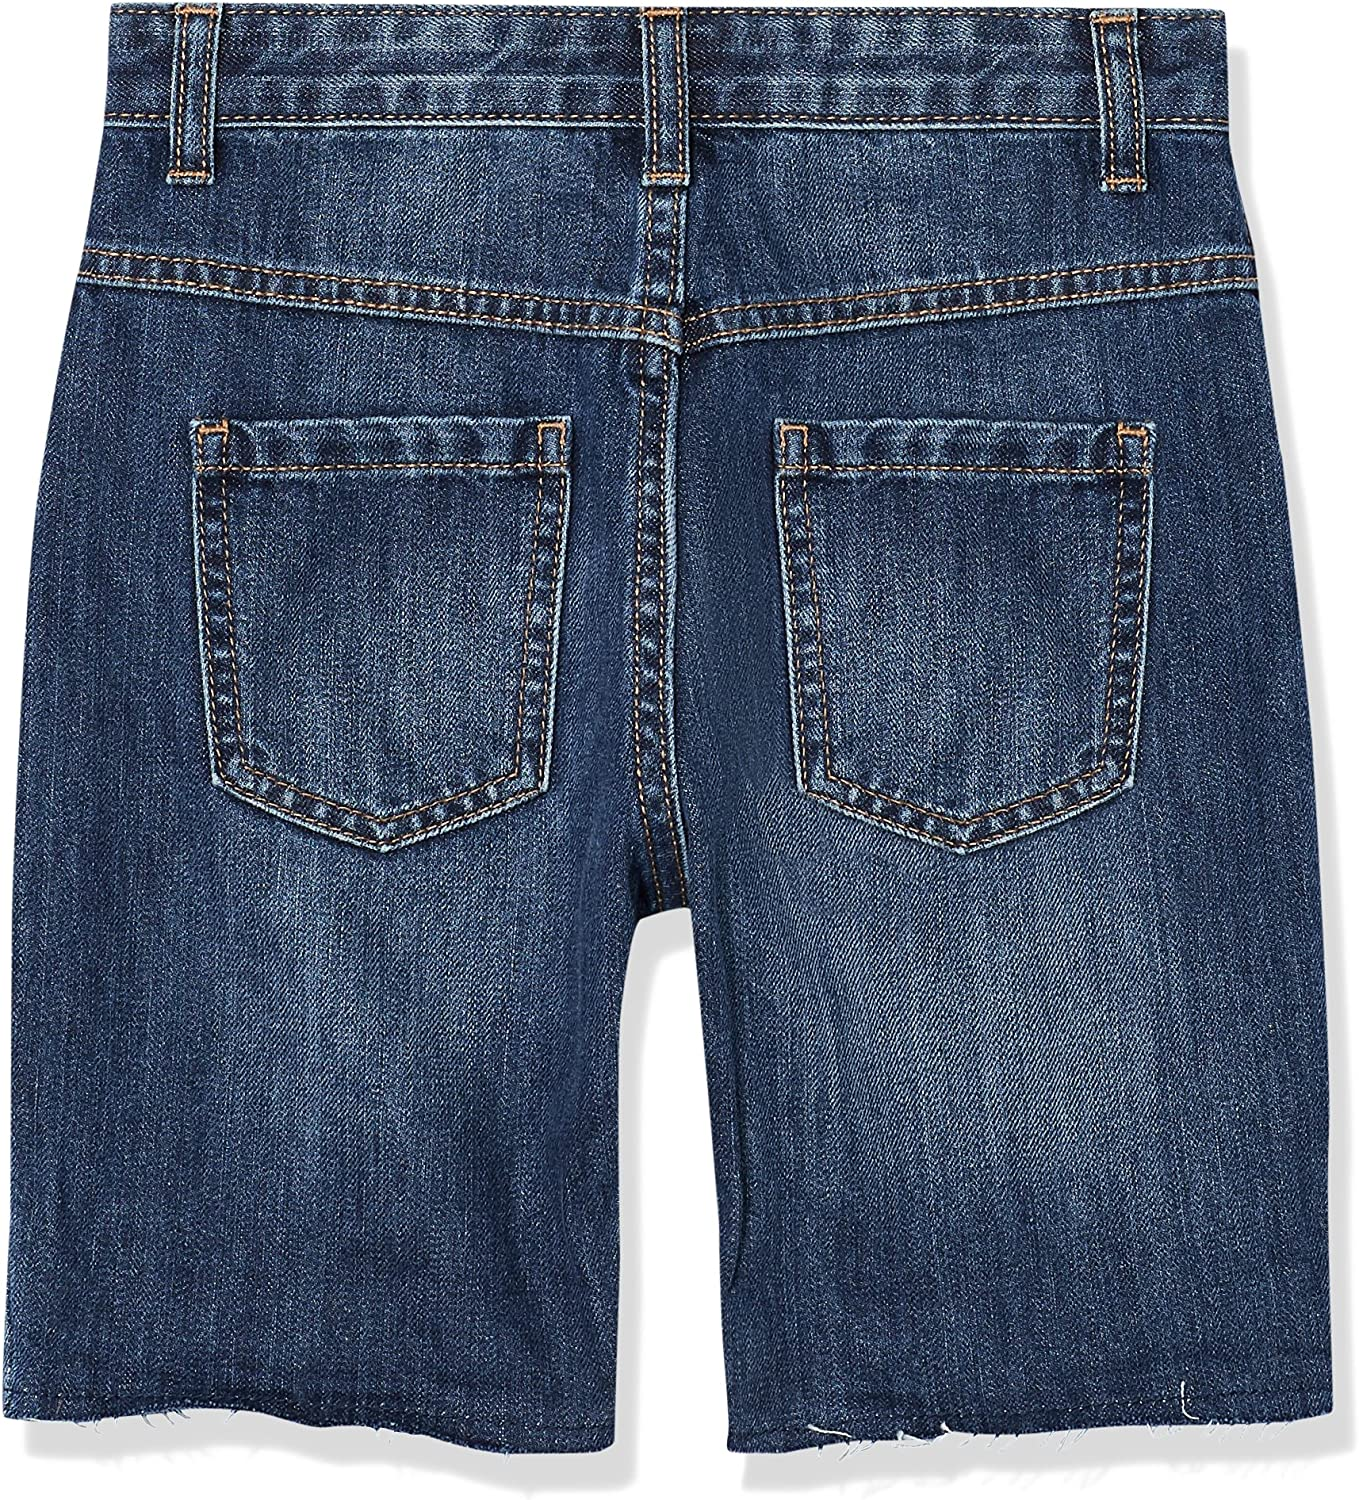 Brand RED WAGON Boys Denim Shorts